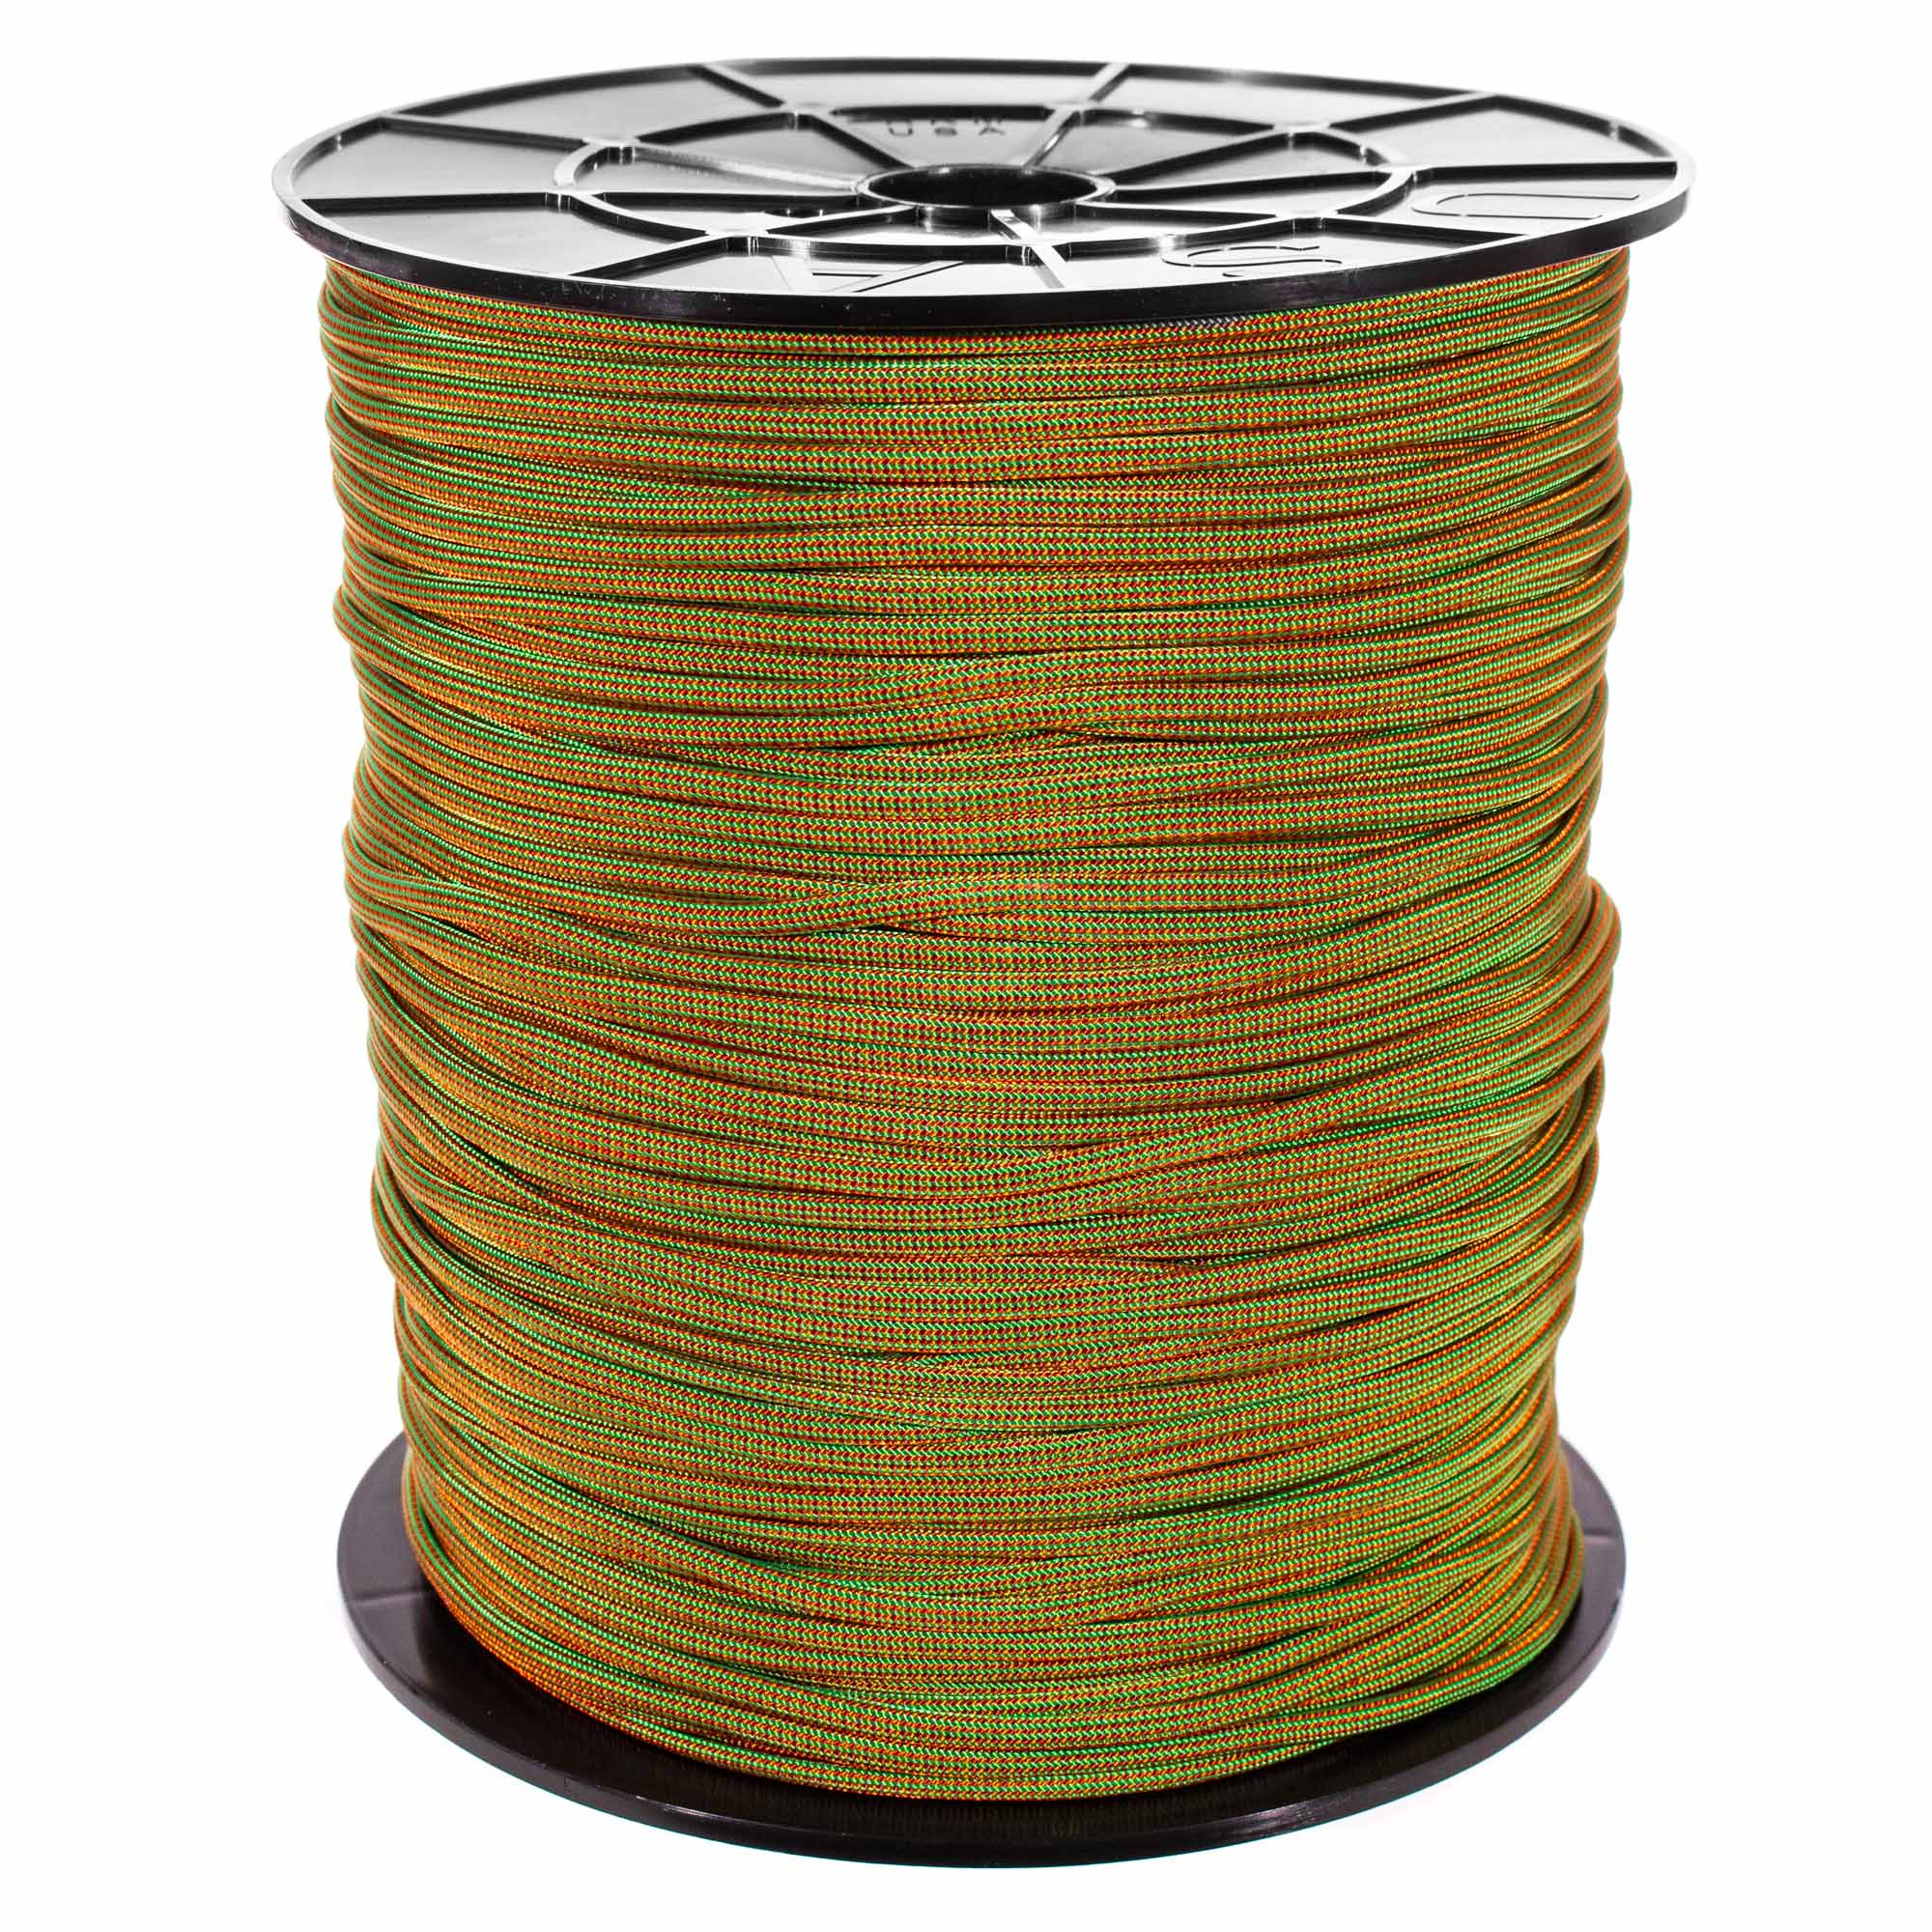 50FT Type III Chocolate Brown Paracord 550 Parachute Cord 7 Strand Made In USA